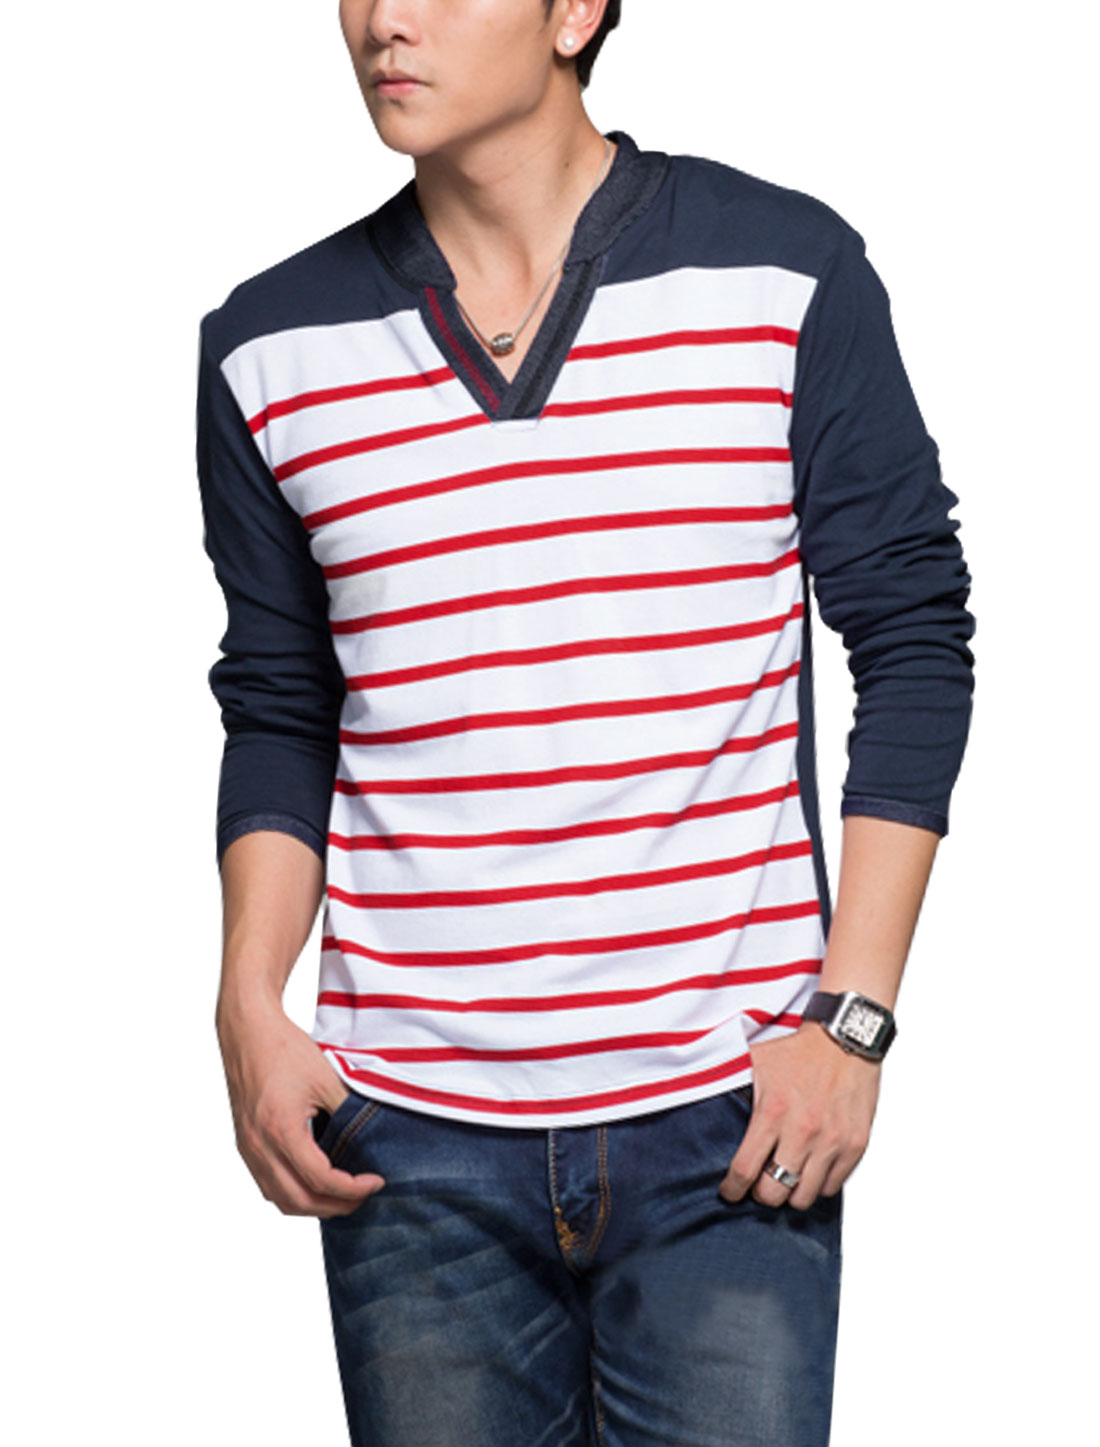 Men Stand Collar V Neckline Long Sleeves Casual Striped T-Shirts Red Navy Blue S